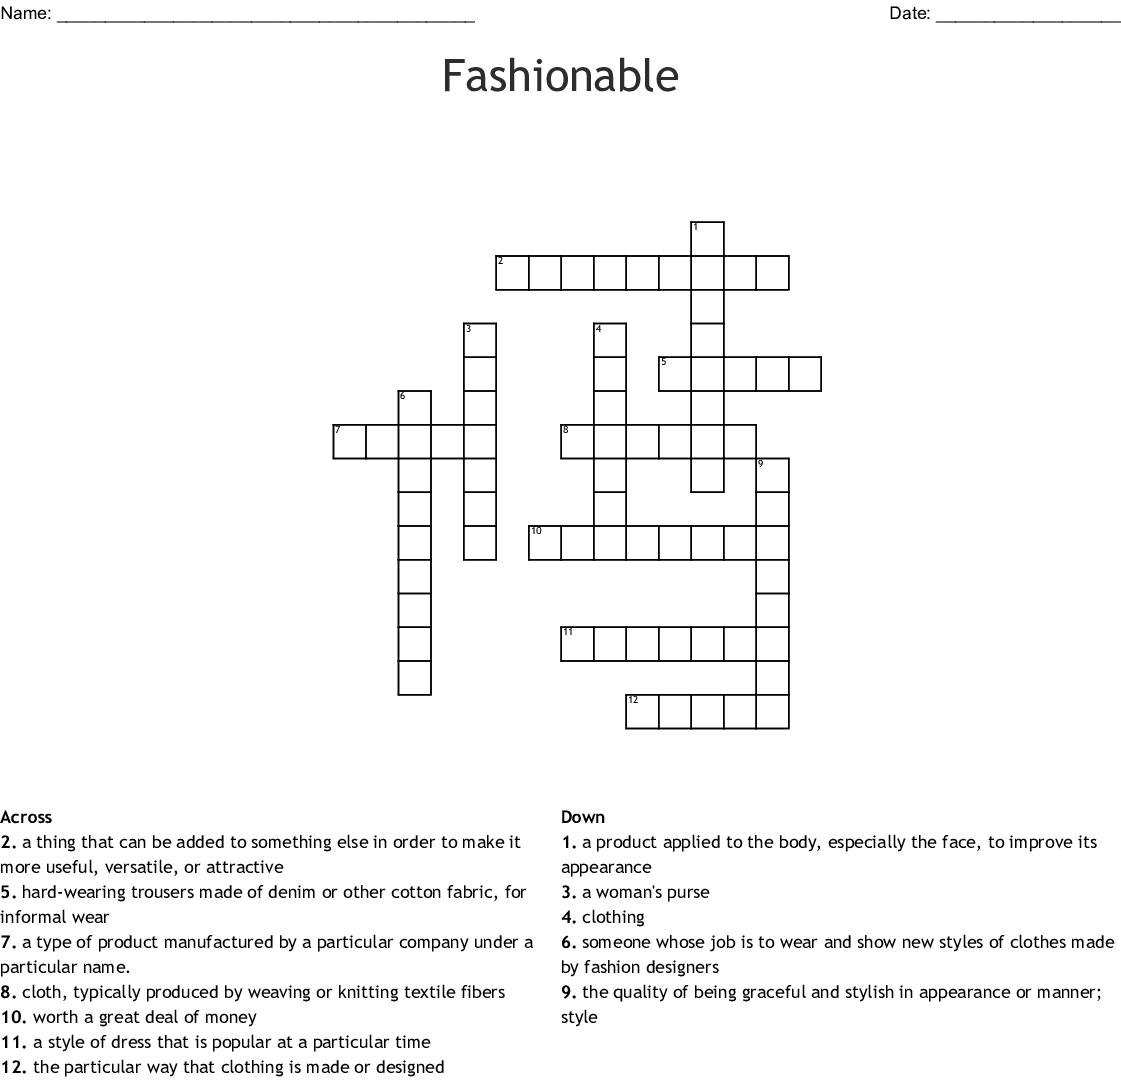 Fashionable Crossword Wordmint